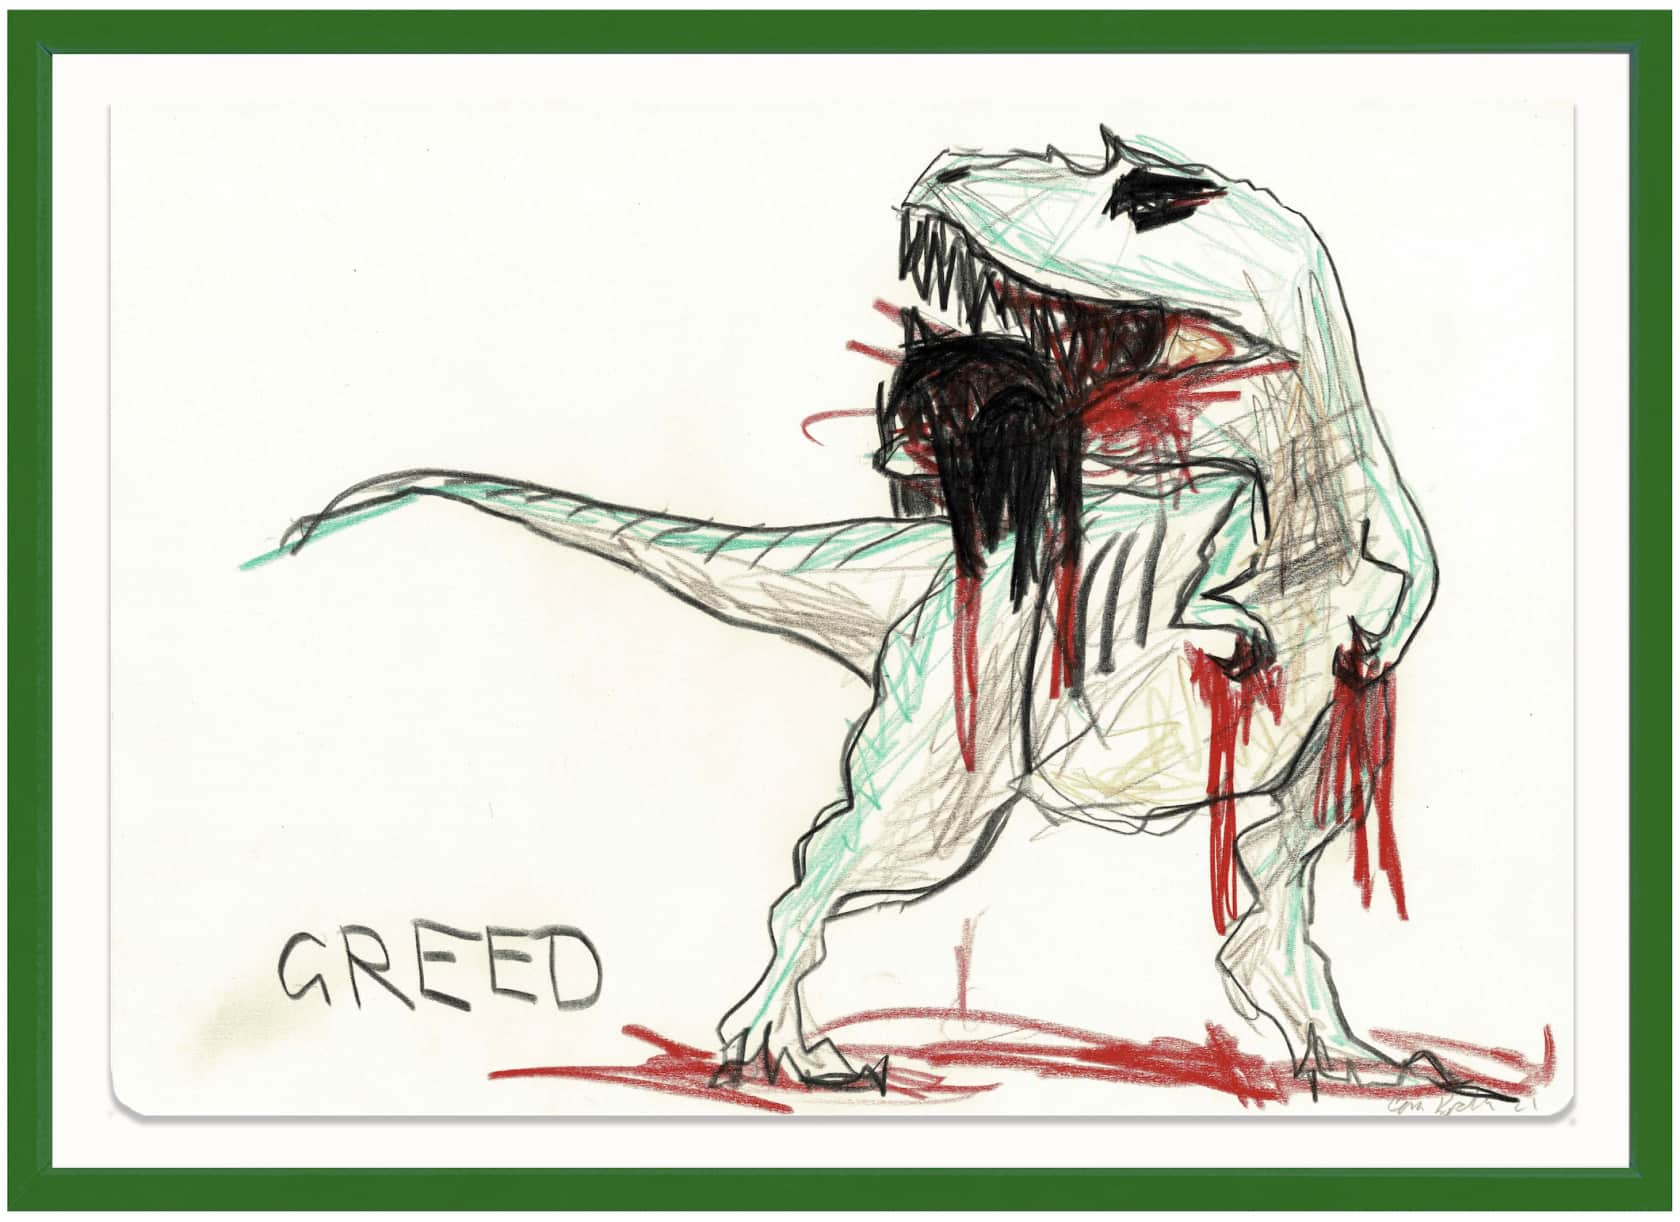 the connor brothers Greed Crayon on paper